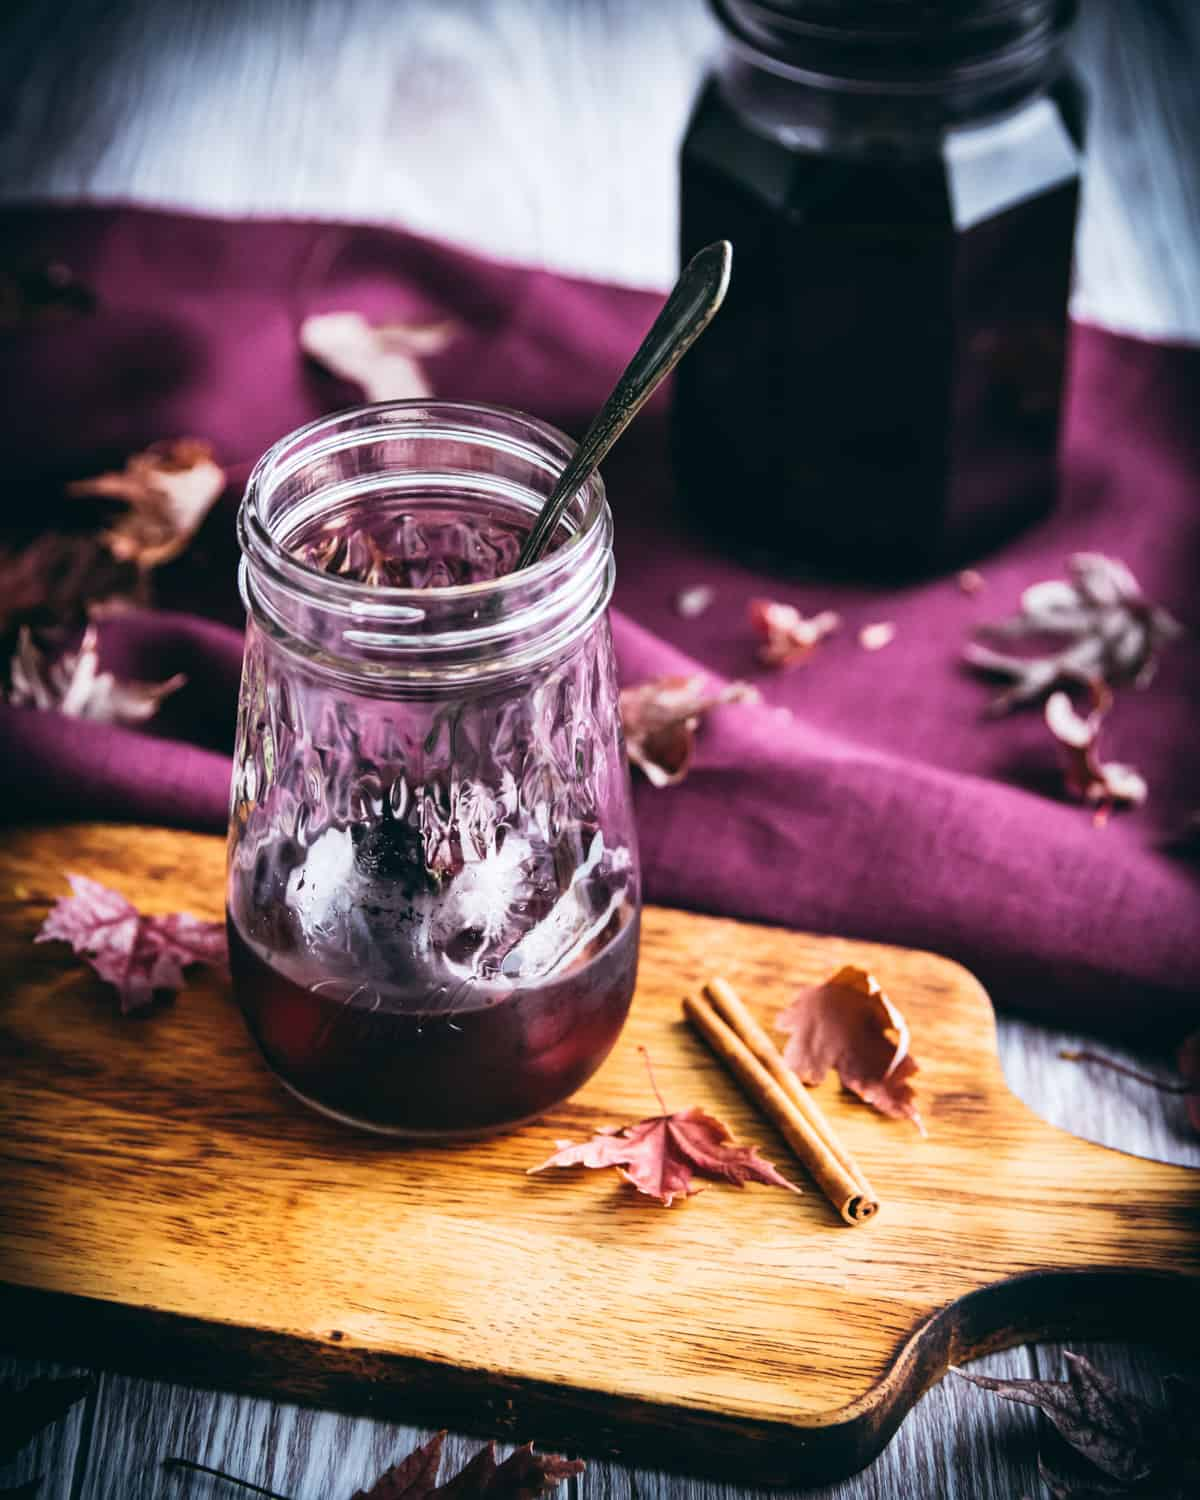 elderberry syrup in a jar with ice and a spoon